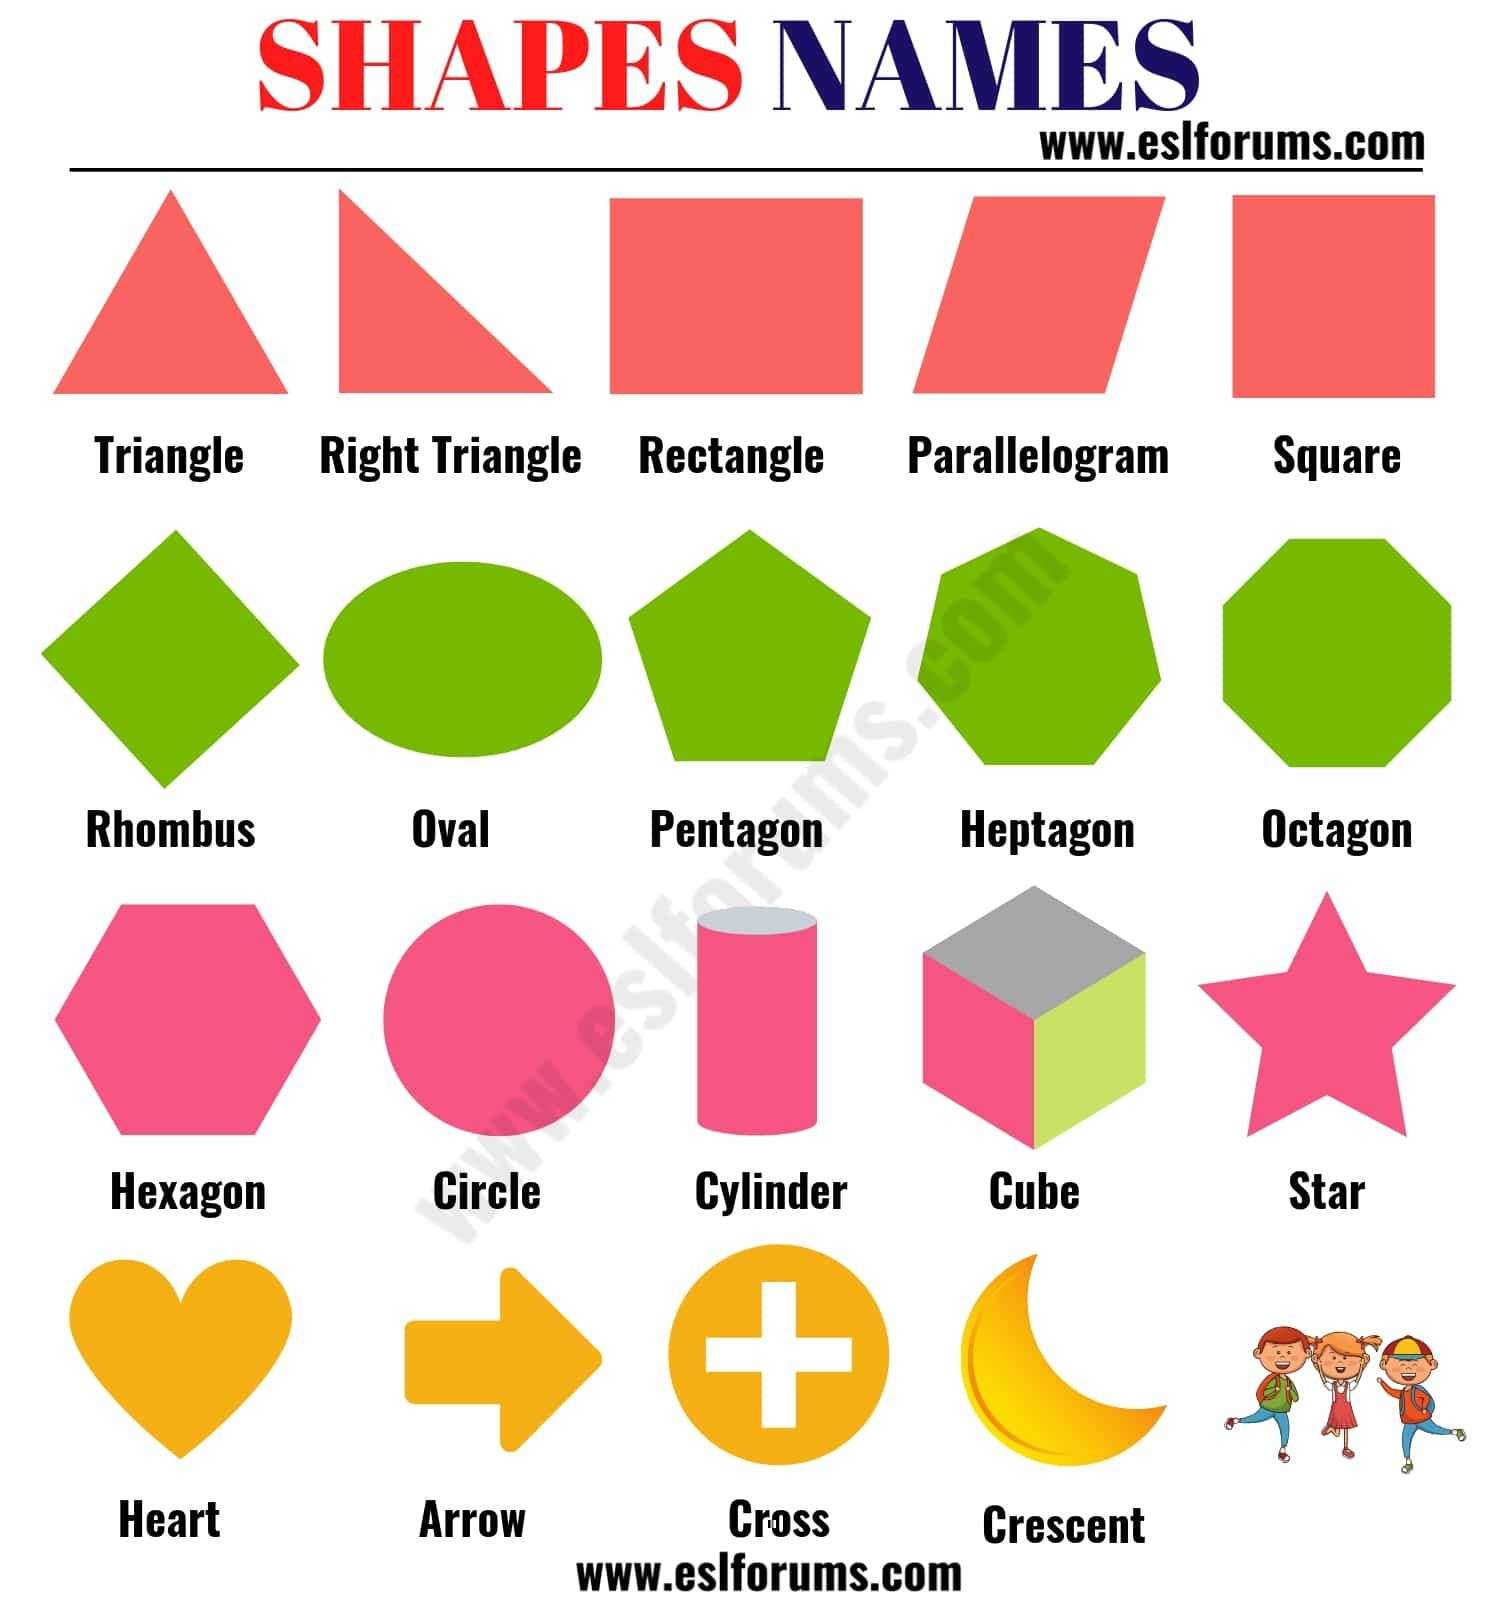 Shapes Names: 20 Important Names of Shapes with Pictures ...